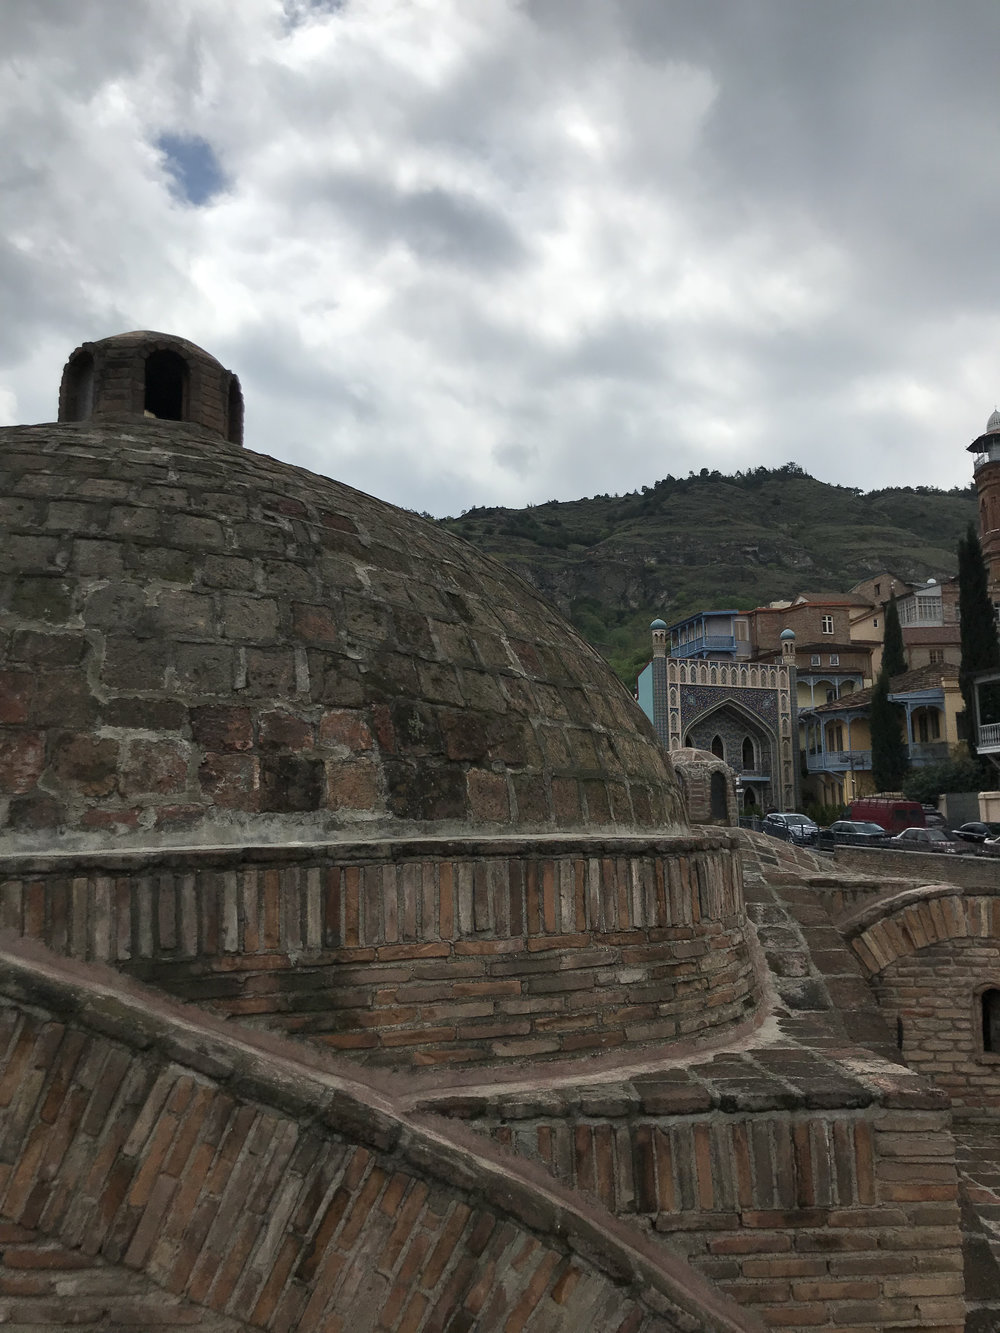 The baths in Tbilisi (they're famous!)